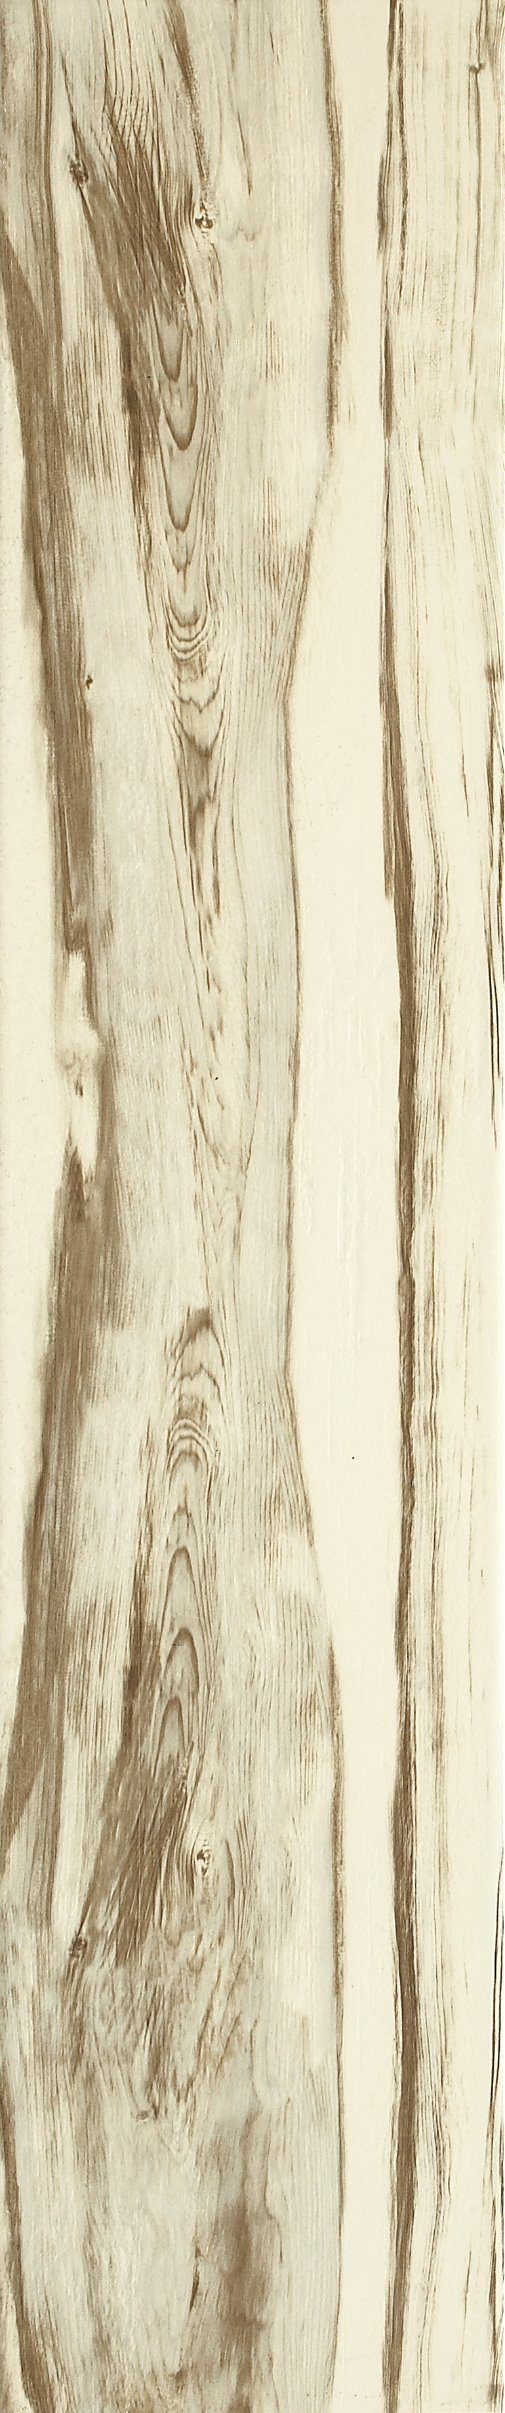 2017 New Design Sandal Wood Look Glazed Porcelain Tile Ceramic Tiles